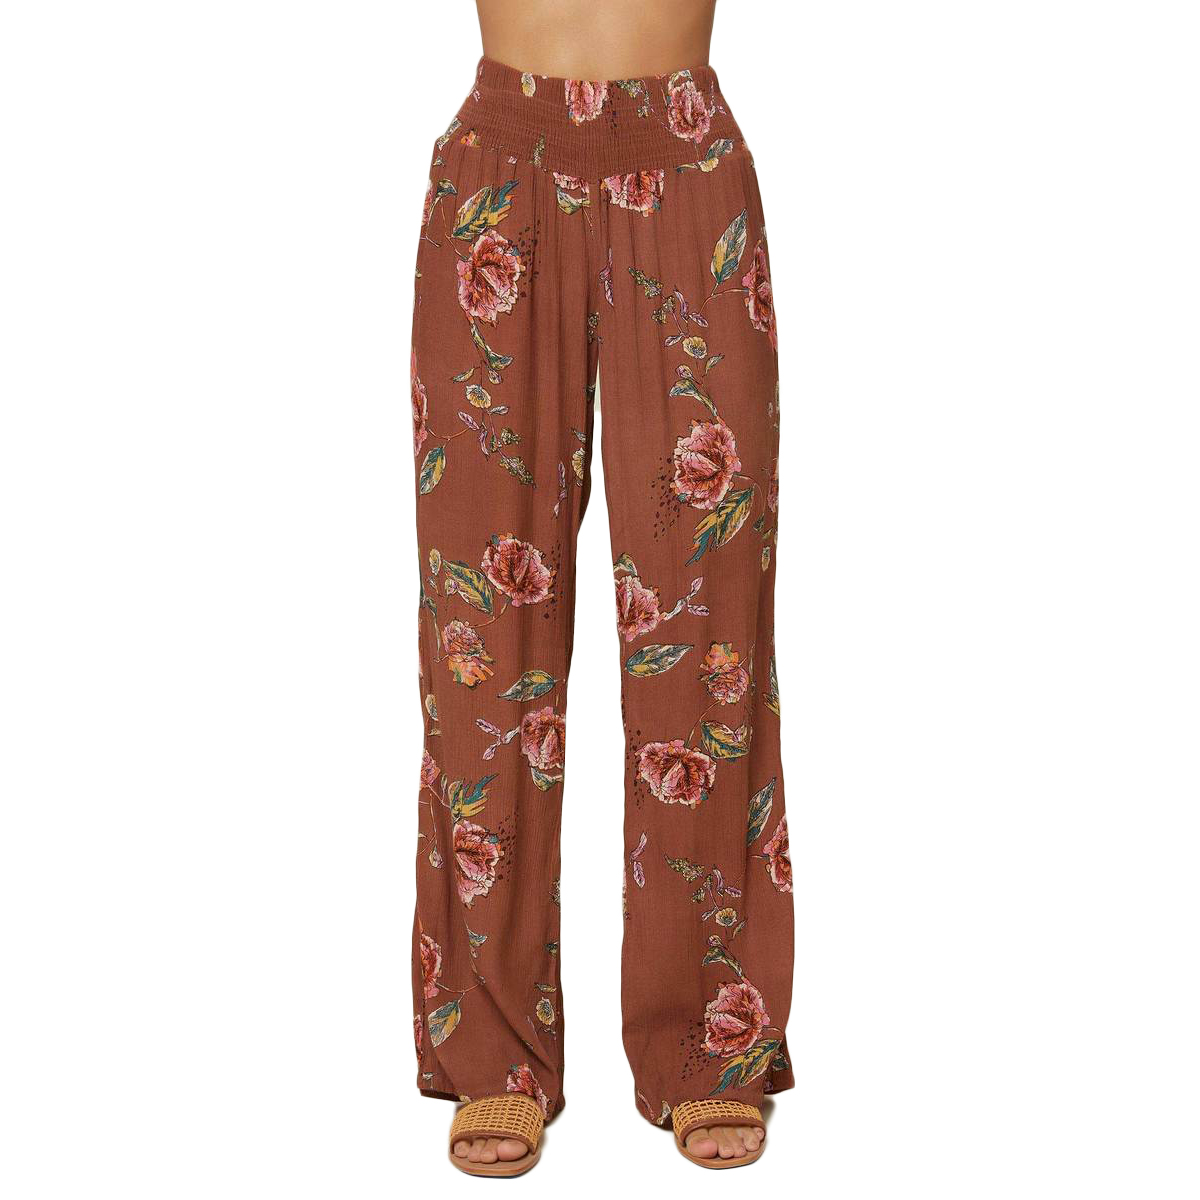 O'neill Women's Johnny Floral Pants - Brown, XS